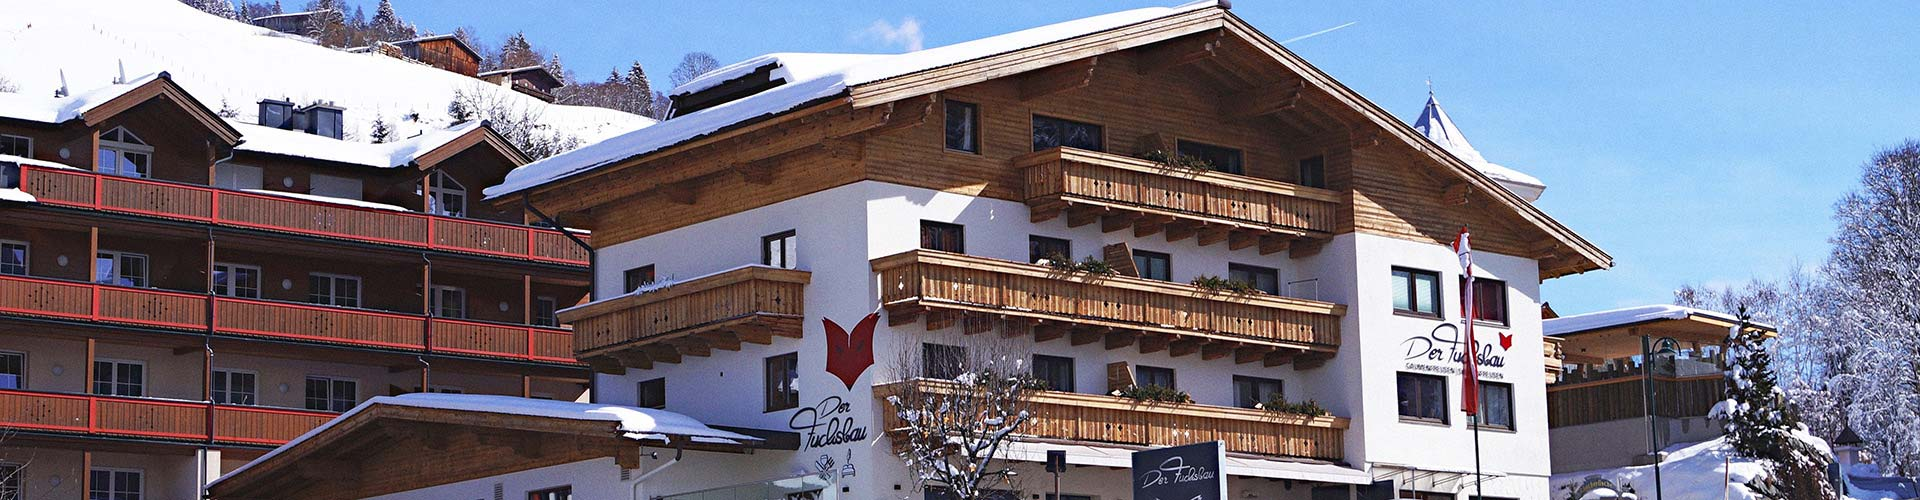 Appartement Iglsberg, Saalbach - JokerCard